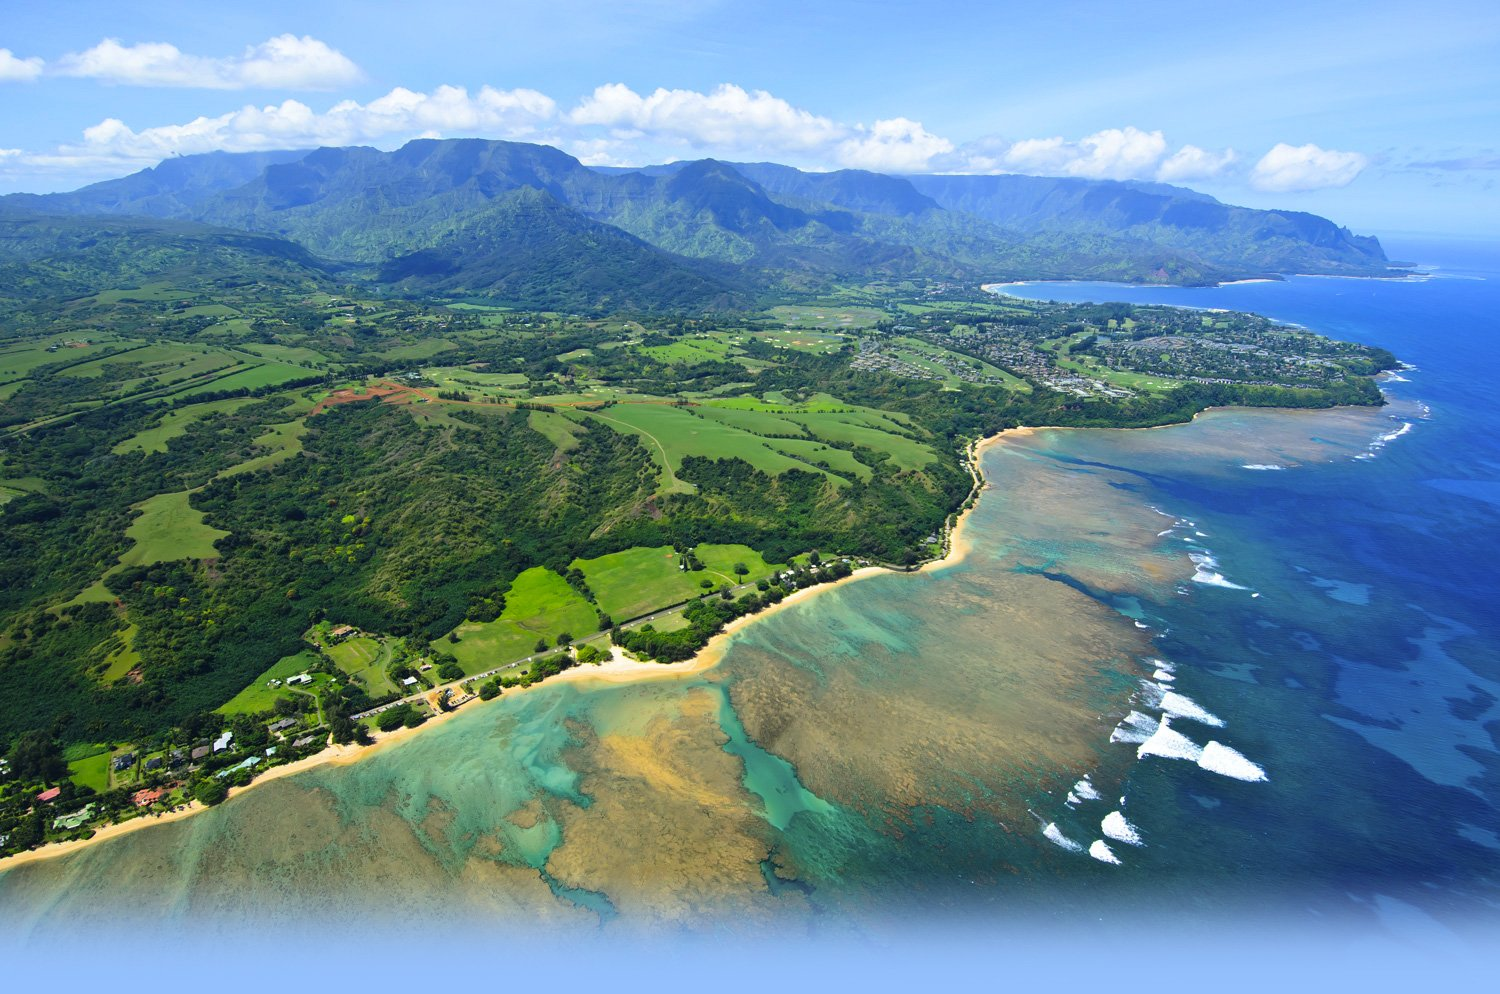 Contact Princeville at Hanalei